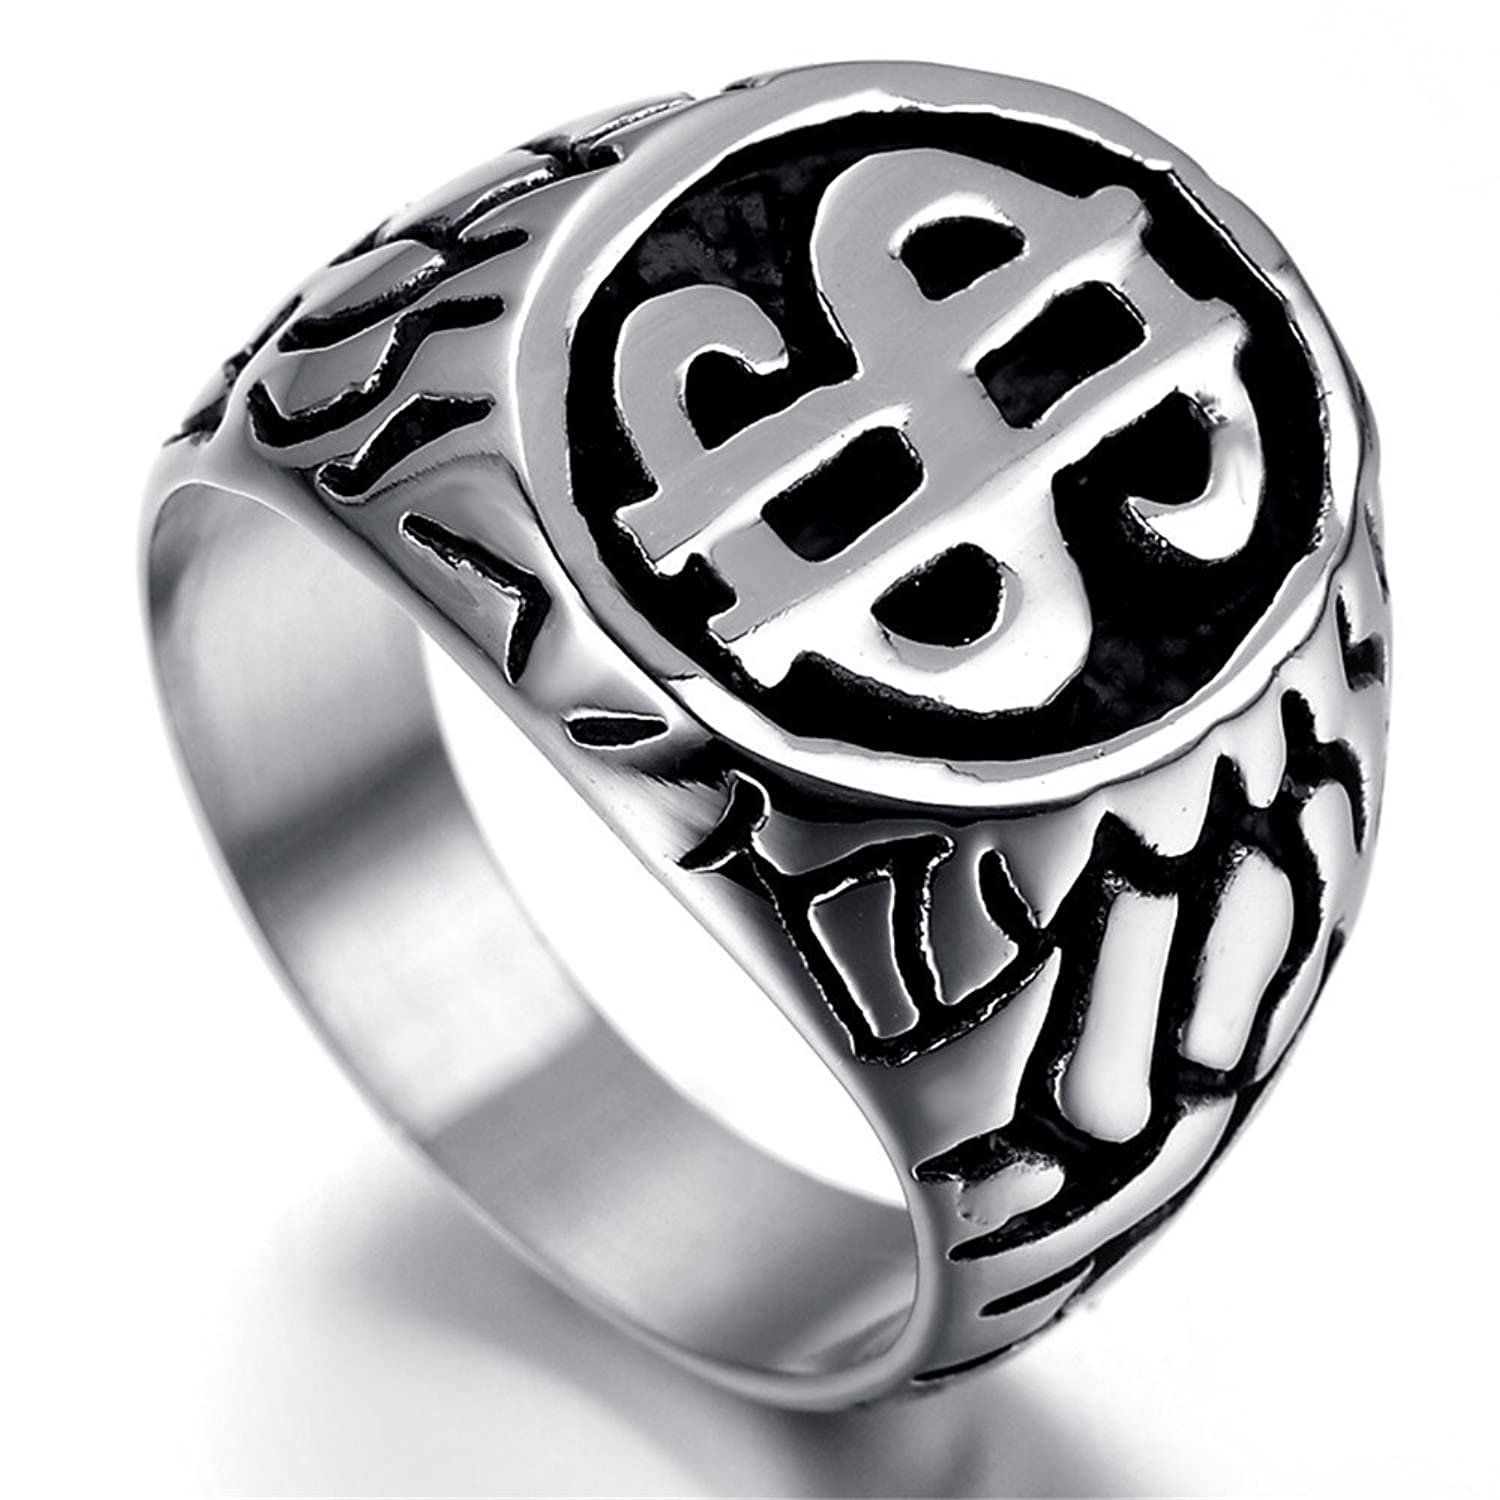 Kstyle Jewelry Mens Stainless Steel Ring, Vintage, Dollar Sign, KR2024